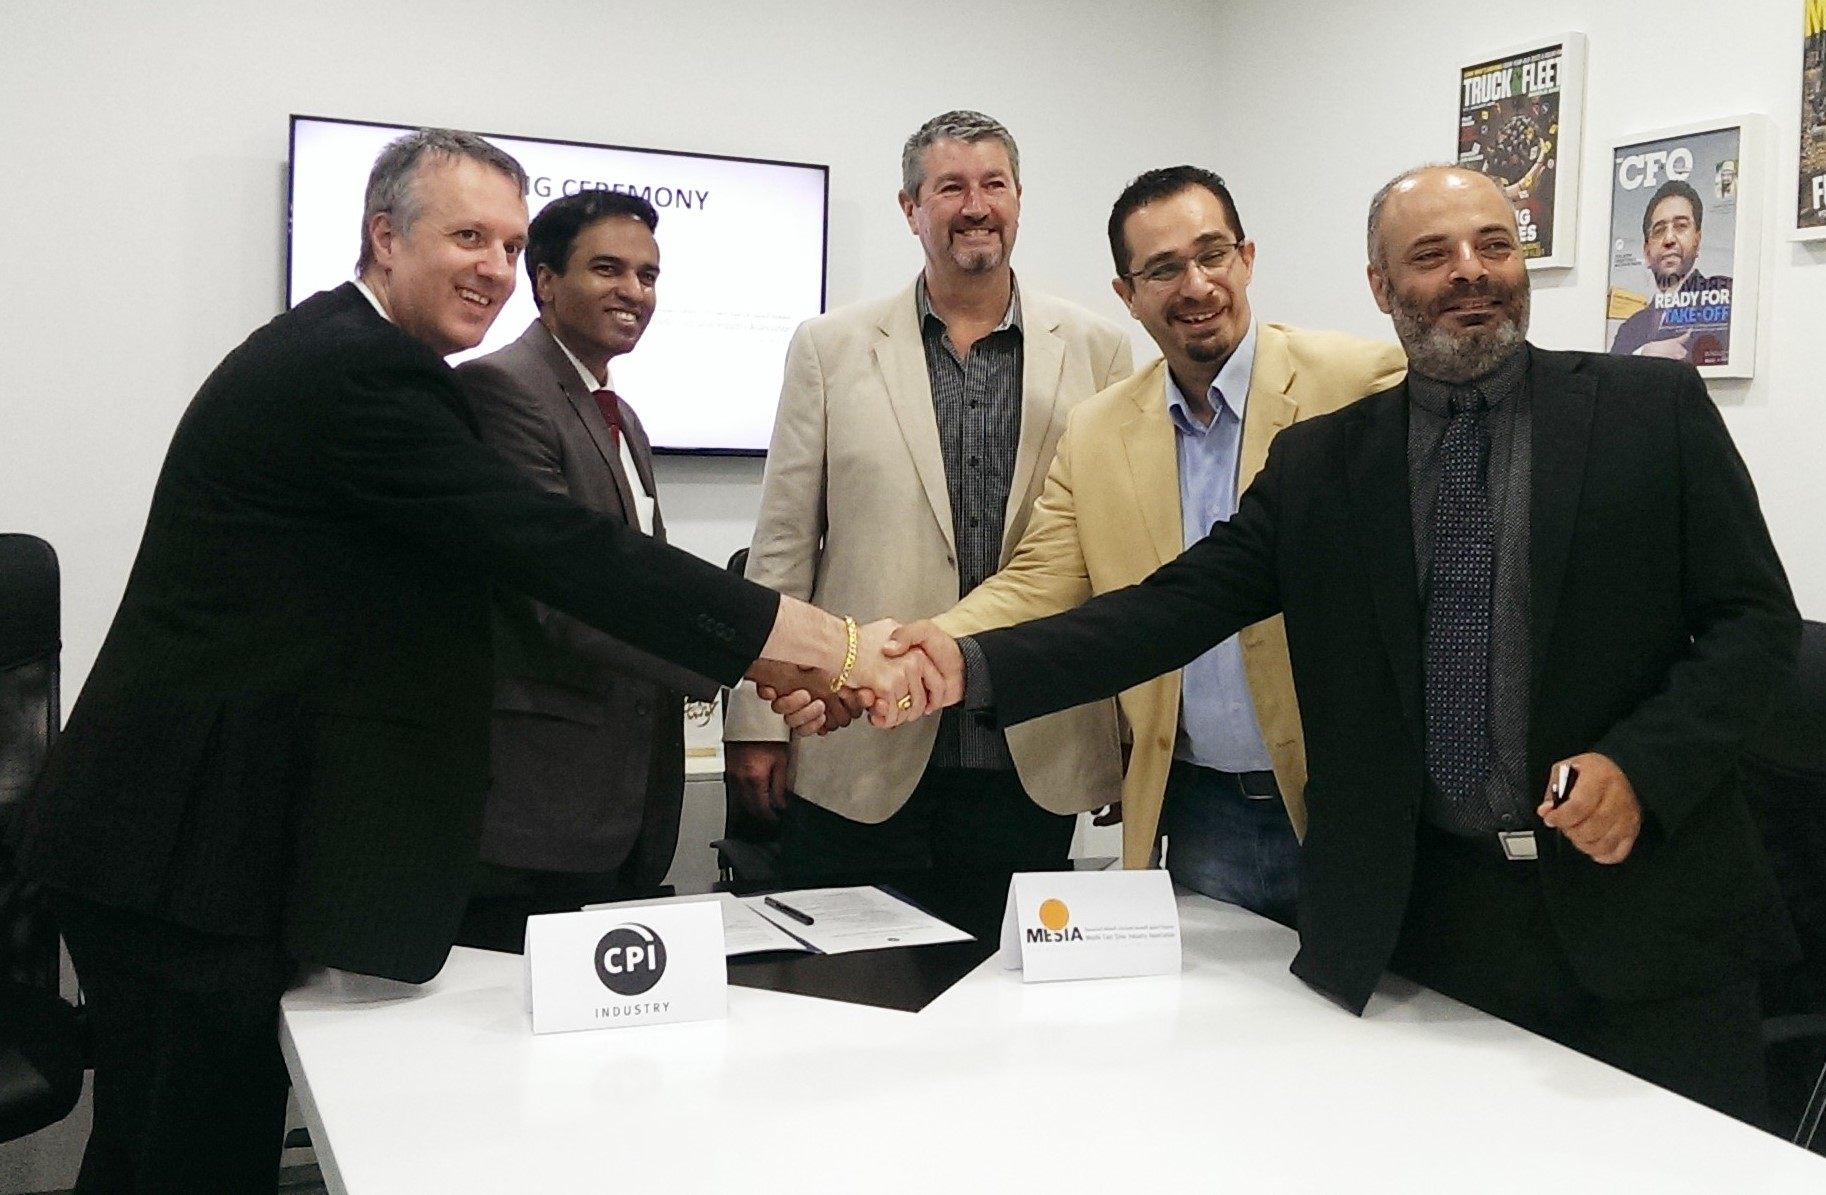 L-R: Frederic Paille, Managing Director, CPI Industry; B Surendar, Editorial Director, CPI Industry; James Stewart, Vice President, MESIA; Hadi Tahboub, President, MESIA and Dr. Toufic Hawat, Research Director, MESIA.